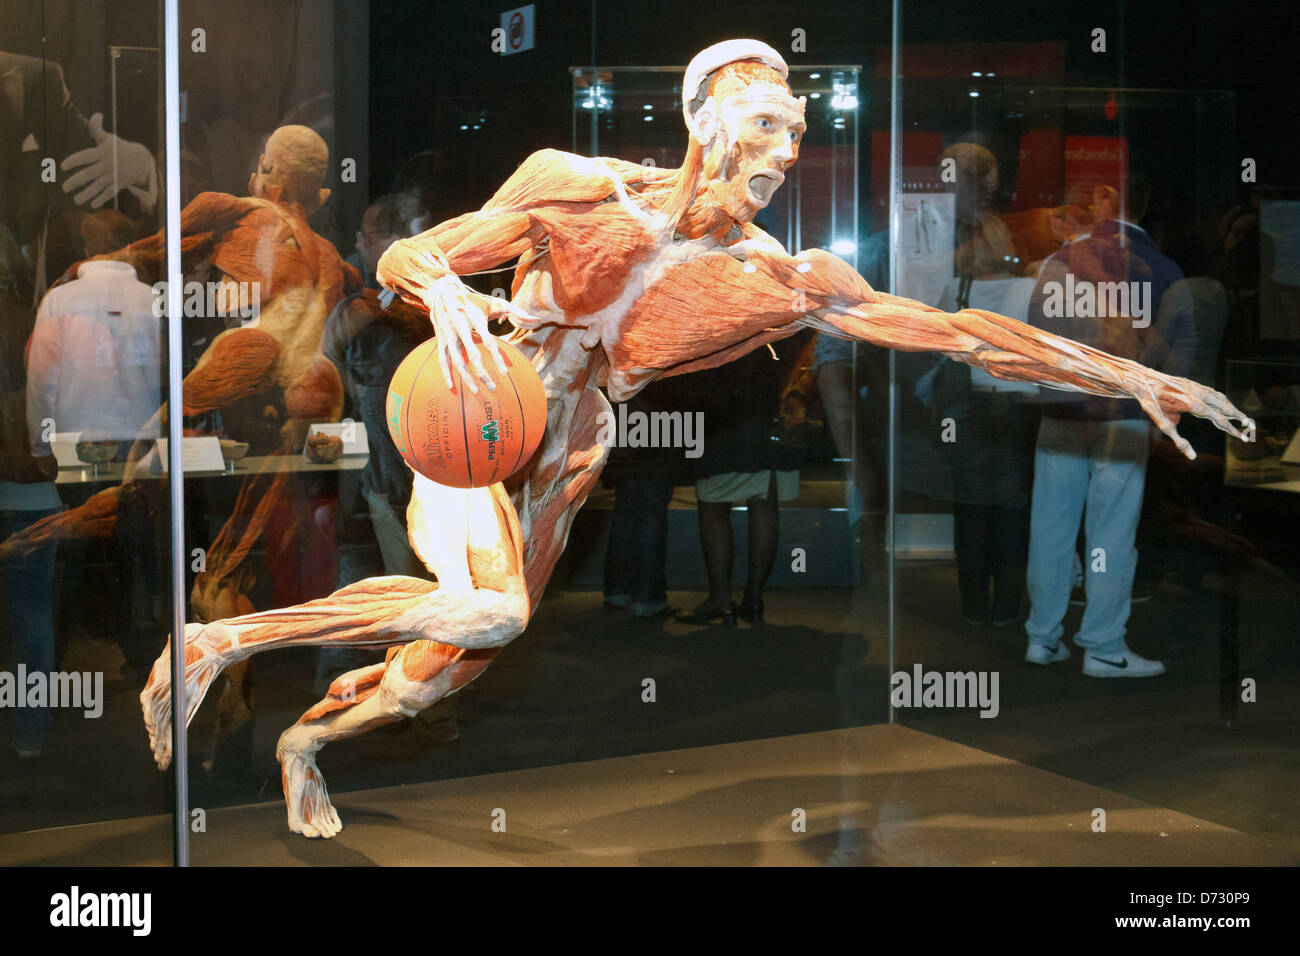 Berlin, Germany, plastination The basketball player at the